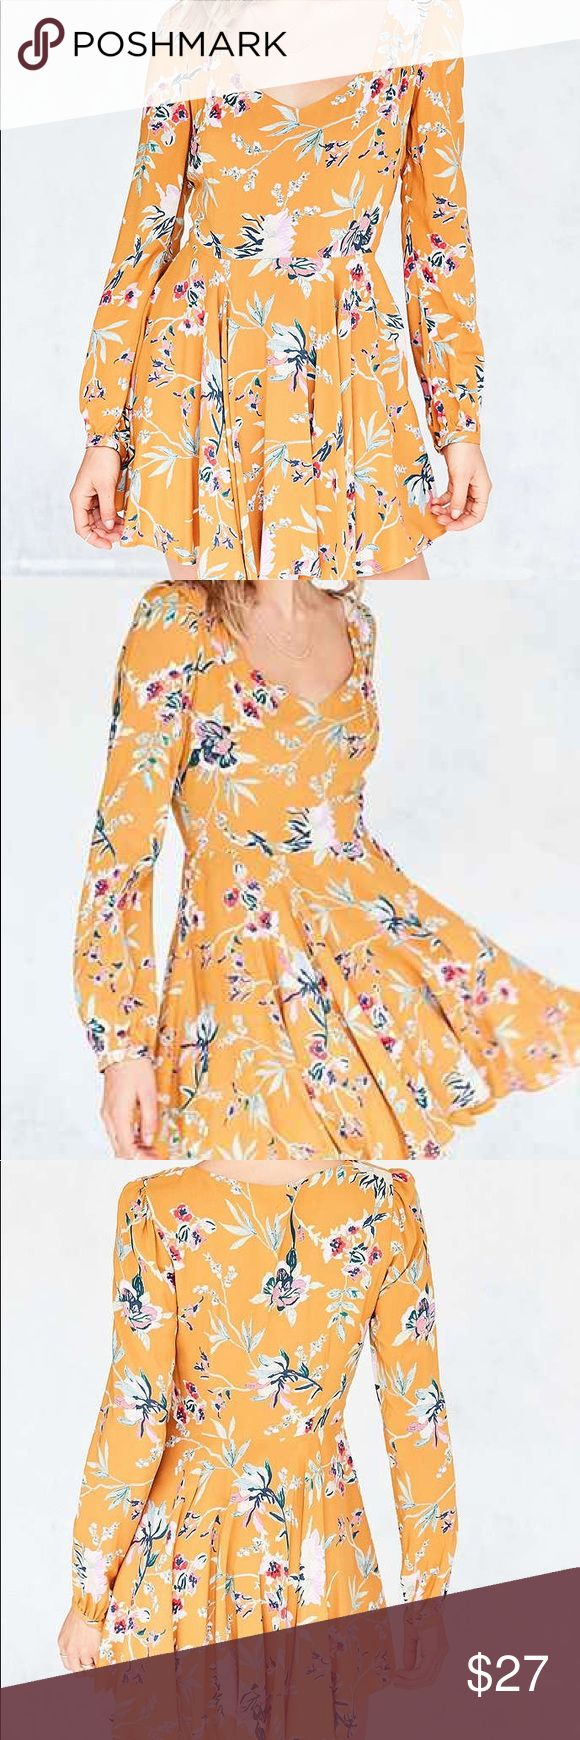 Urban Outfitters Ecote Rosalinda Long Sleeve Dress Urban Outfitters Ecote Rosalinda Floral Long Sleeve Mini Dress. Orange with pink, purple, and green floral print. Side zip enclosure. Sweetheart neckline. Fit and flare bodice. Size 4. Fits true to size. Purchased July 2016. Urban Outfitters Dresses Mini